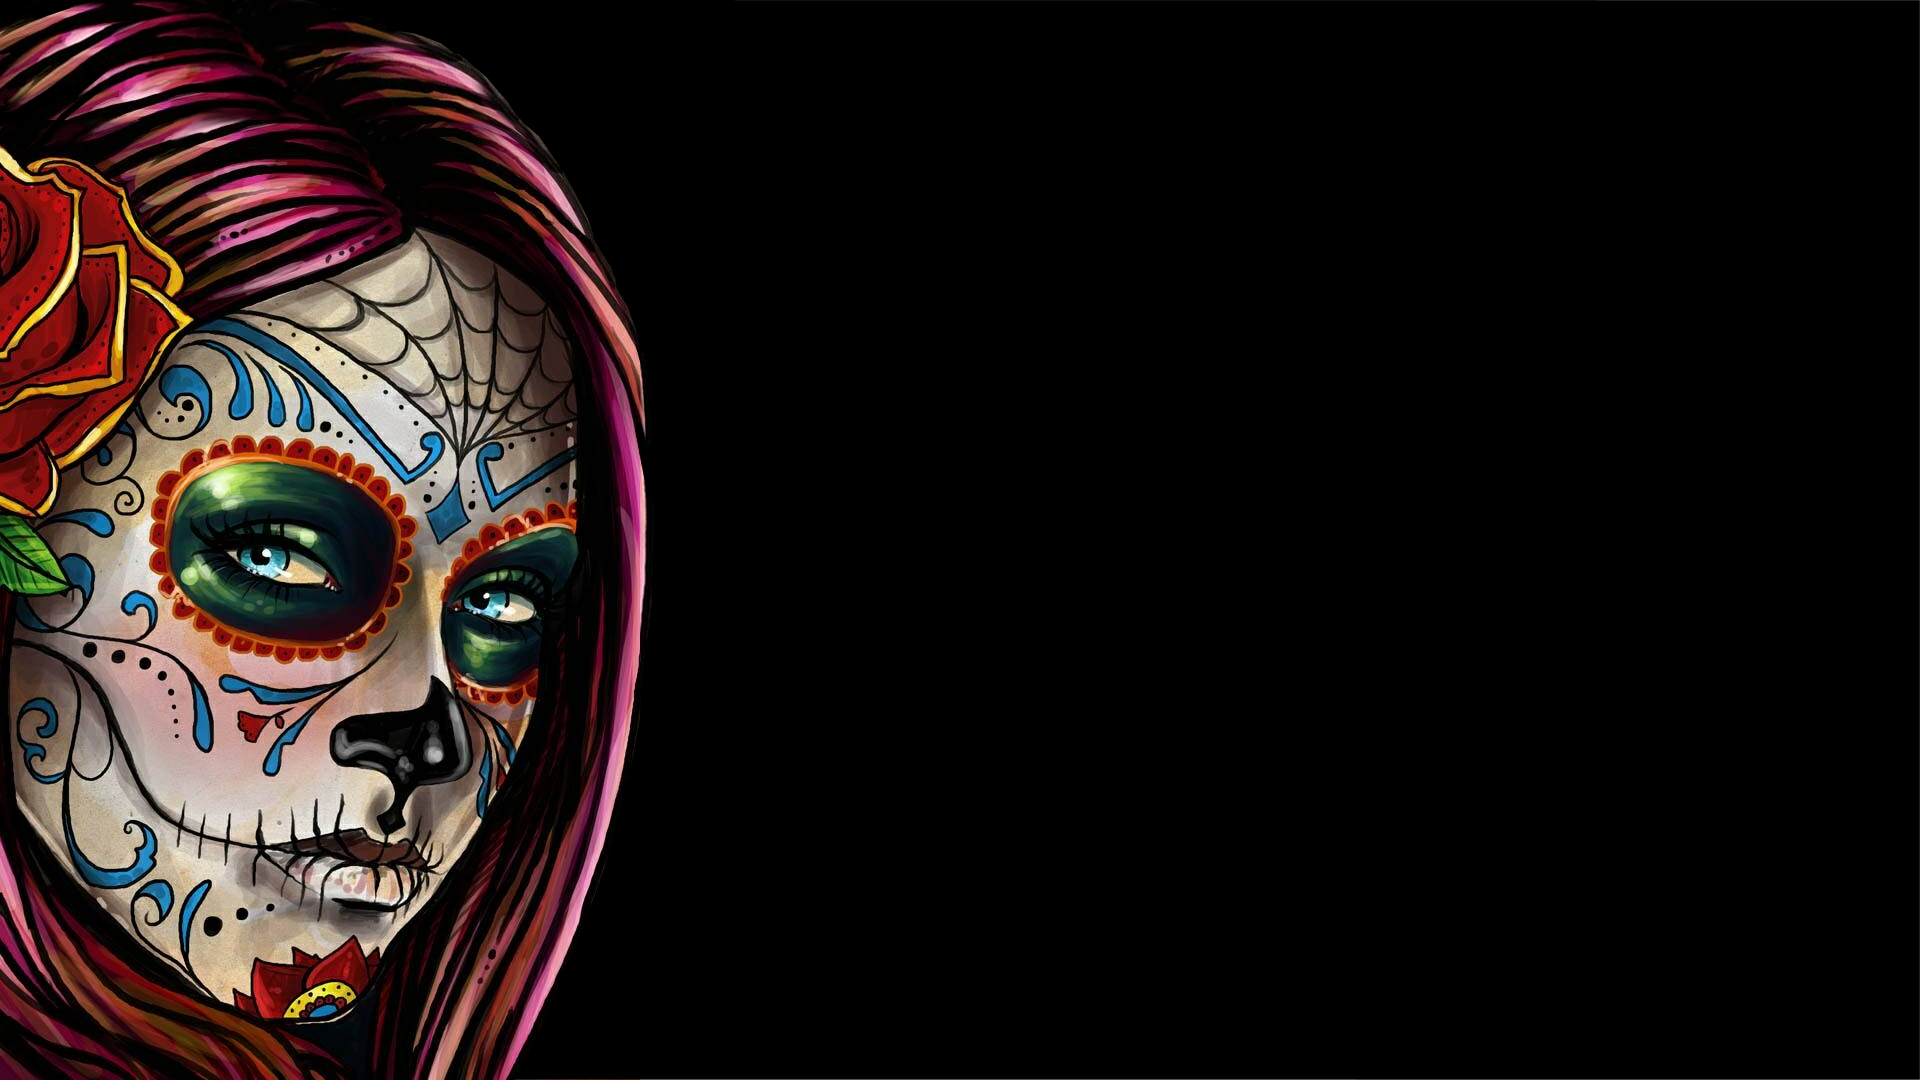 Sugar Skull Desktop Backgrounds for Pinterest 1920x1080